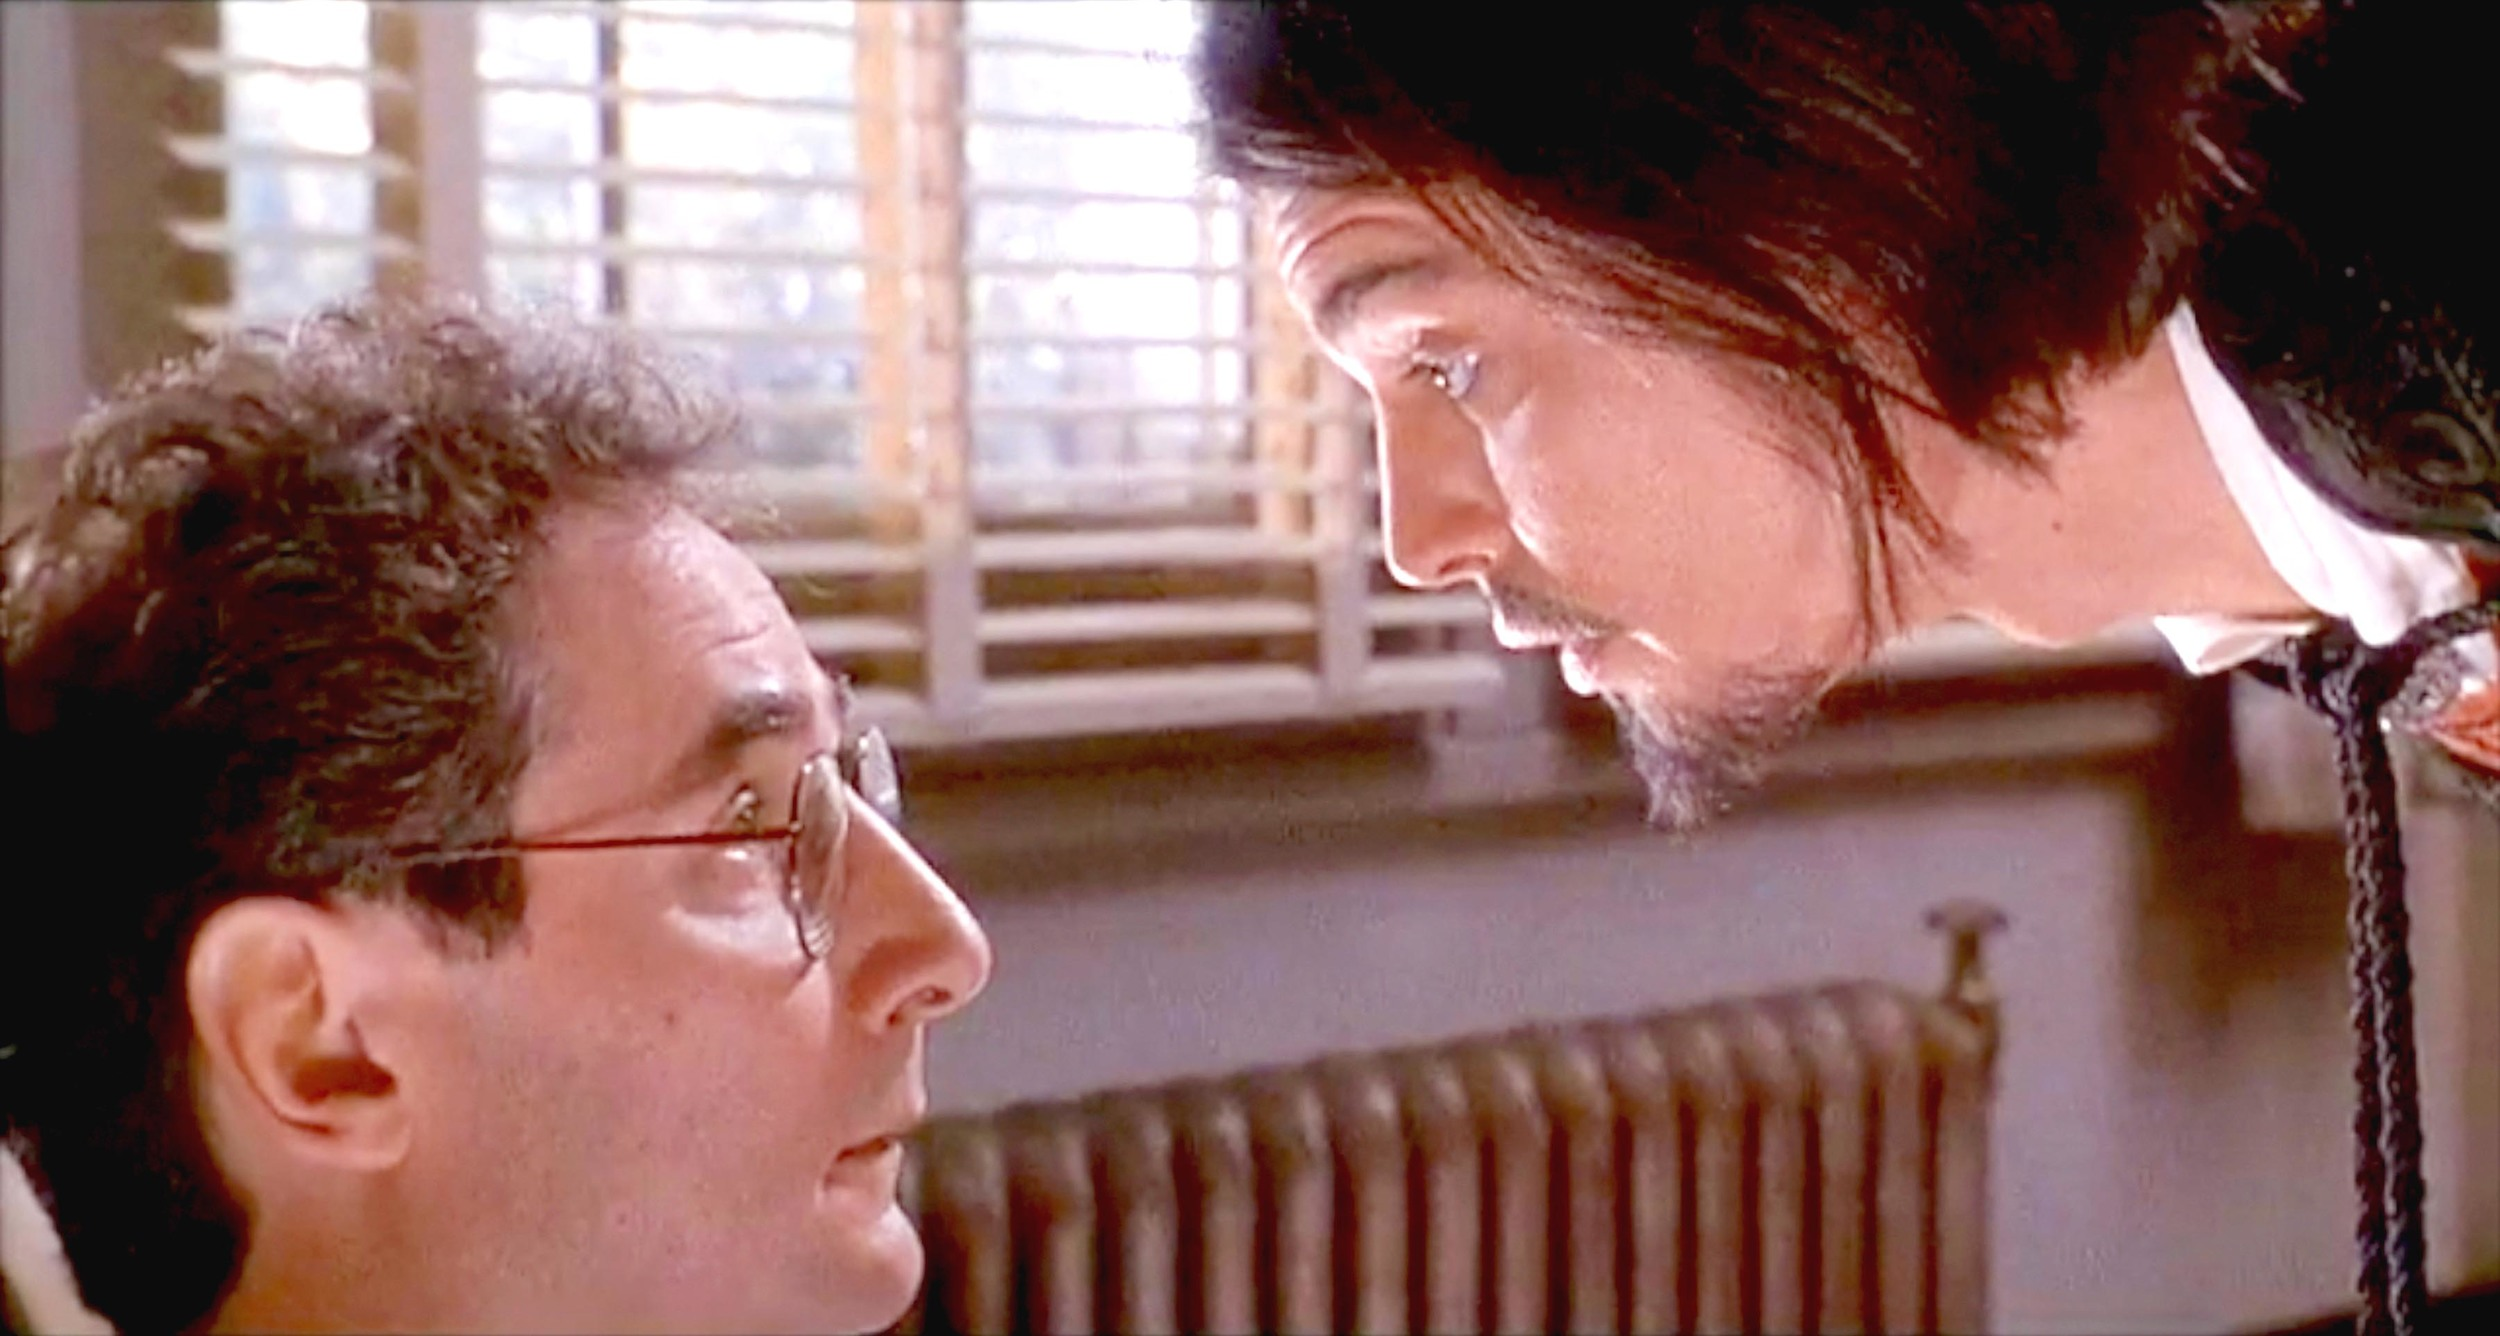 As Bill Dunsmore in DON JUAN DEMARCO, with Johnny Depp.